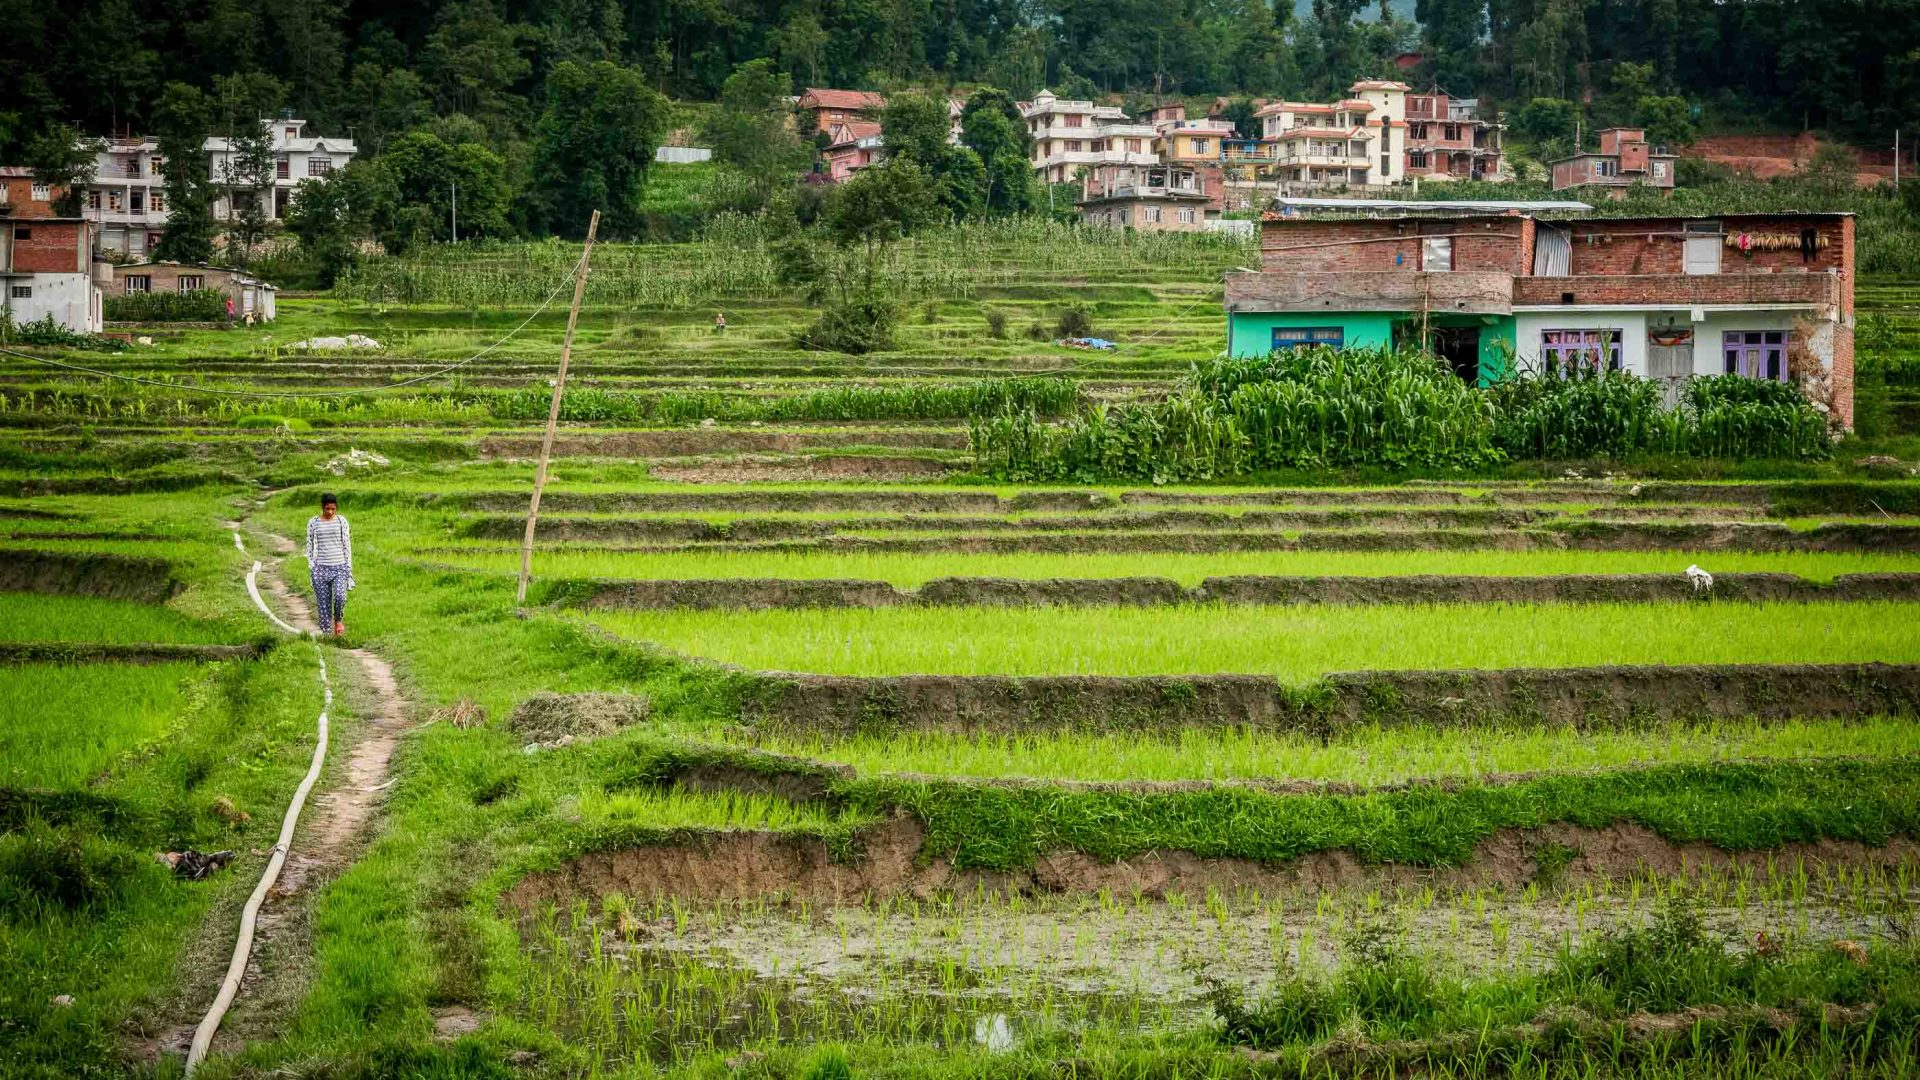 The lush green rice paddy fields of Panauti, Nepal.